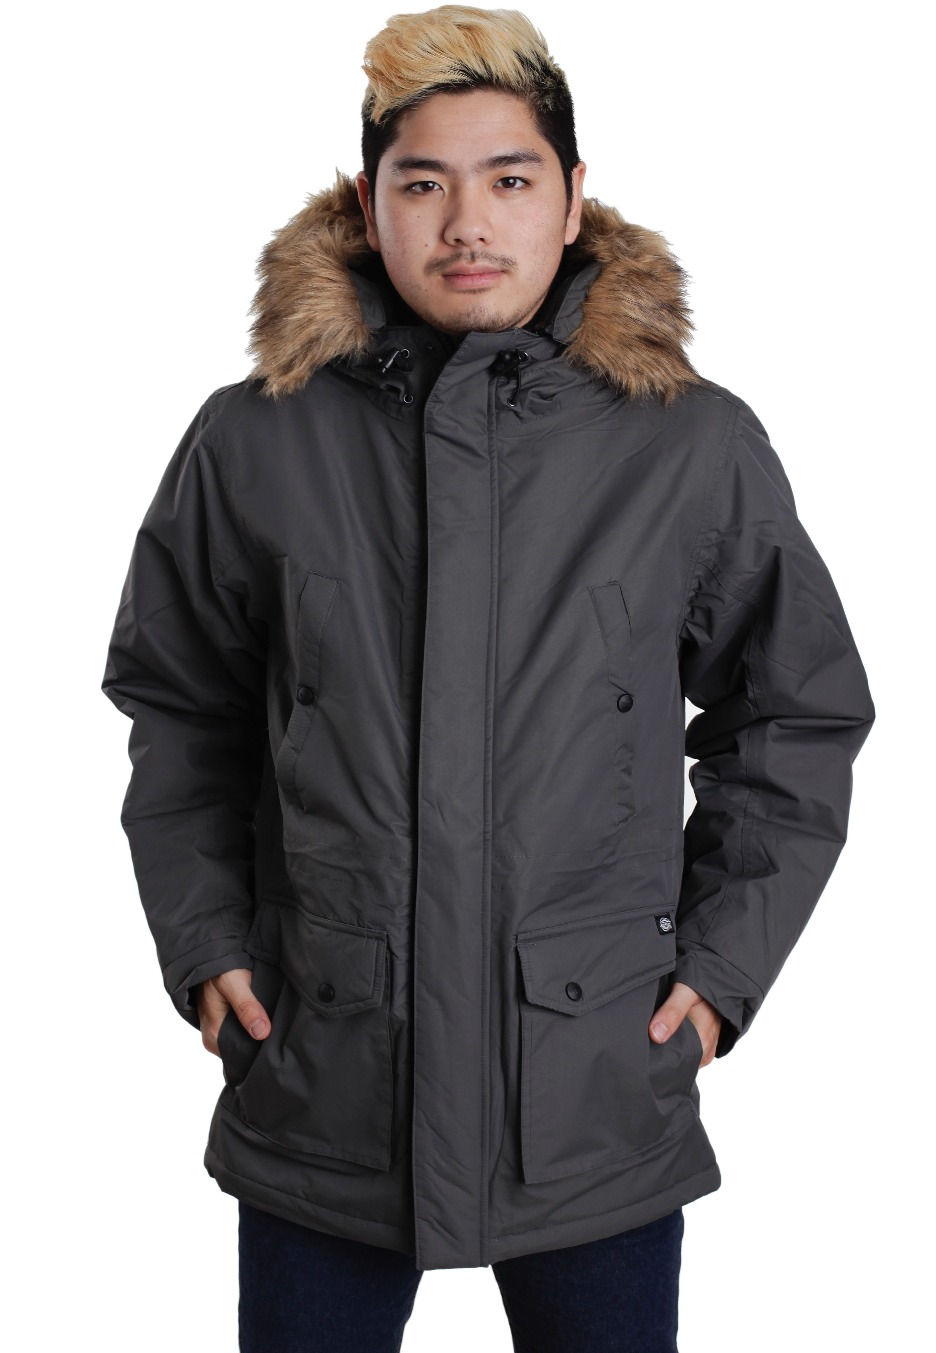 981b821bc88dc Dickies - Curtis Charcoal Grey - Jacket - Impericon.com Worldwide